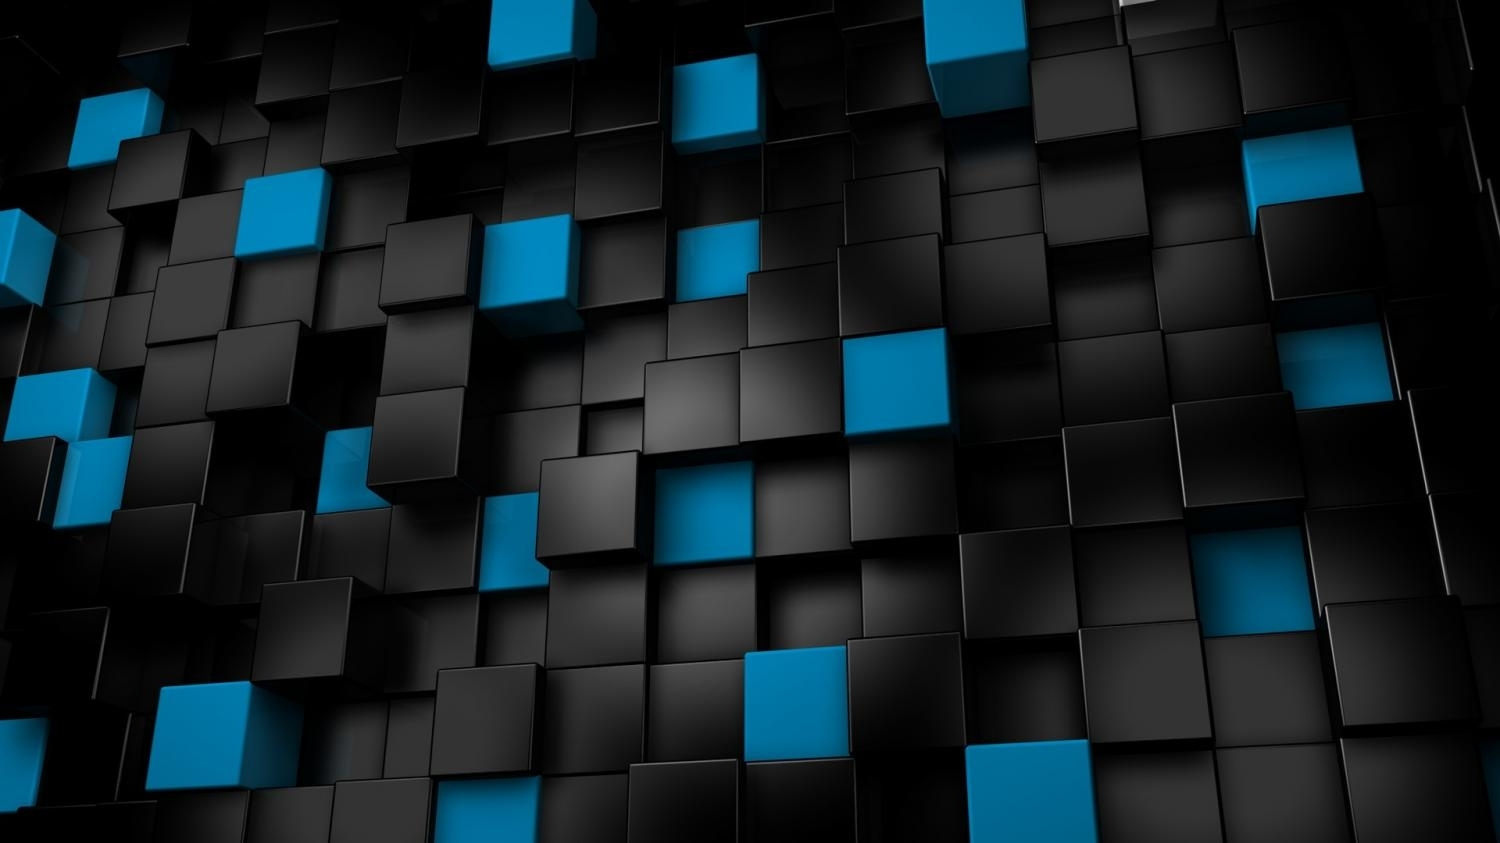 blue 3d cubes wallpaper for android - android live wallpaper